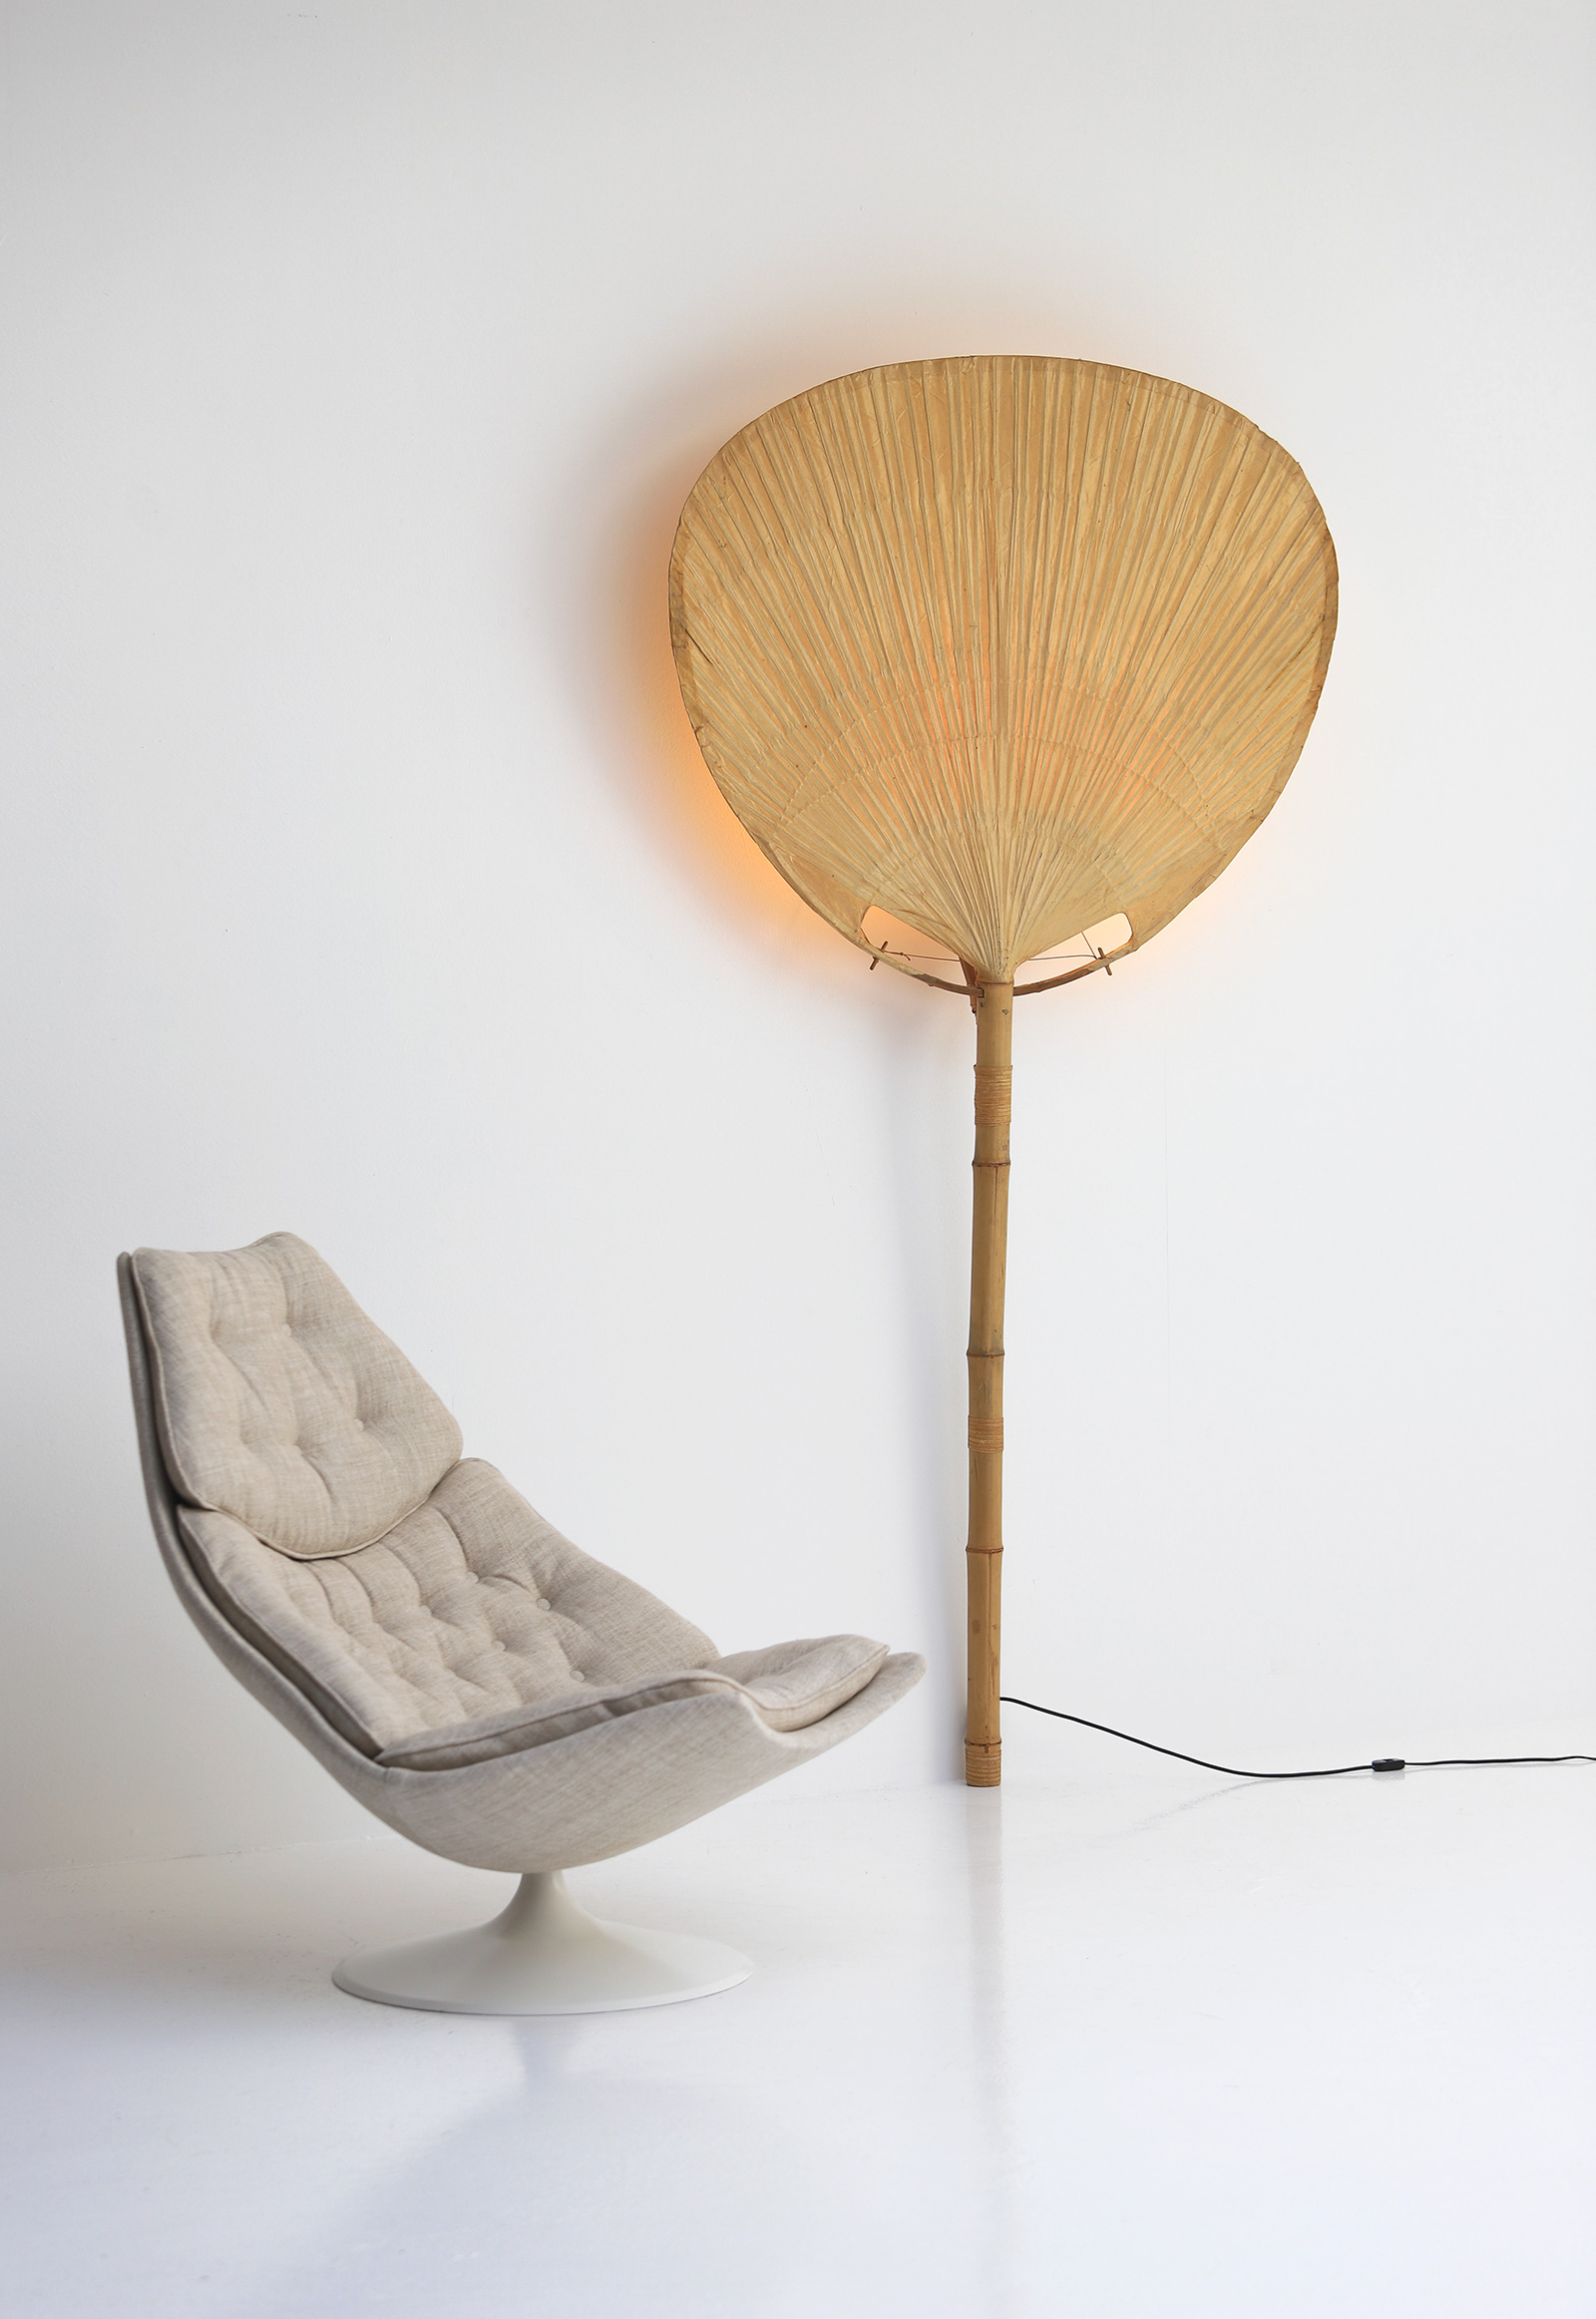 Large Uchiwa Floor Lamp by Ingo Maurer, 1977image 1